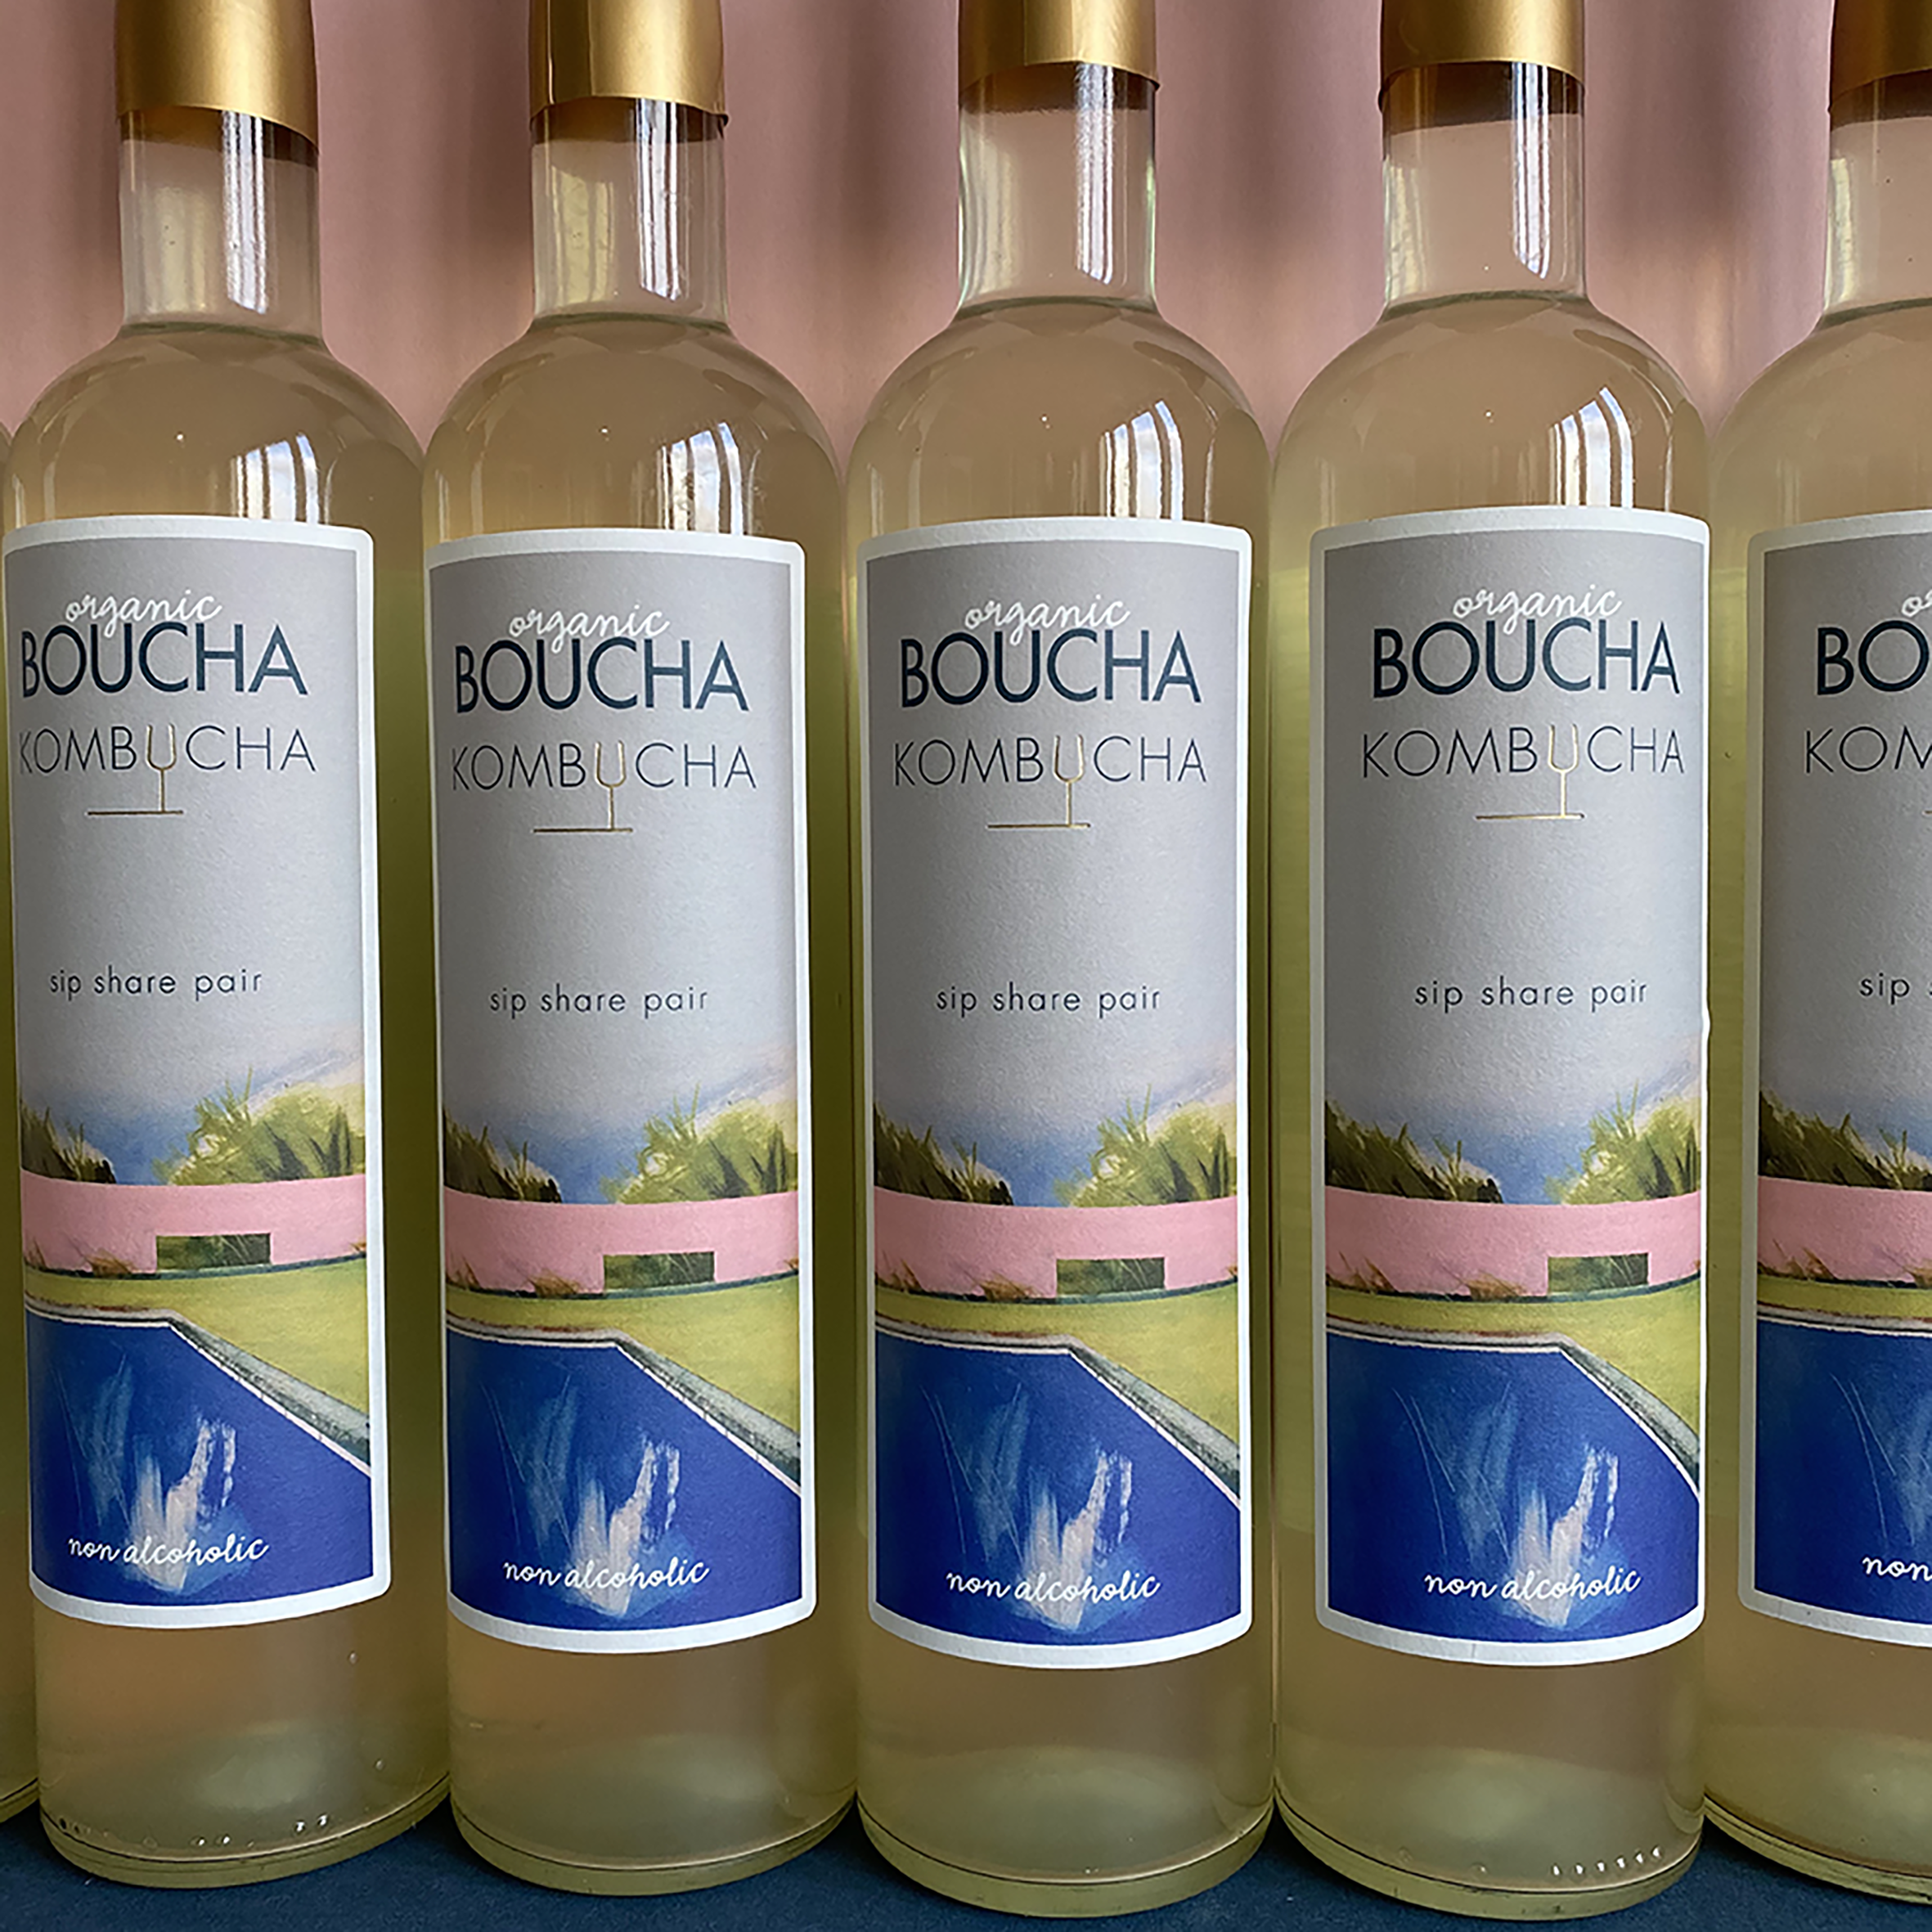 Win a case of Boucha